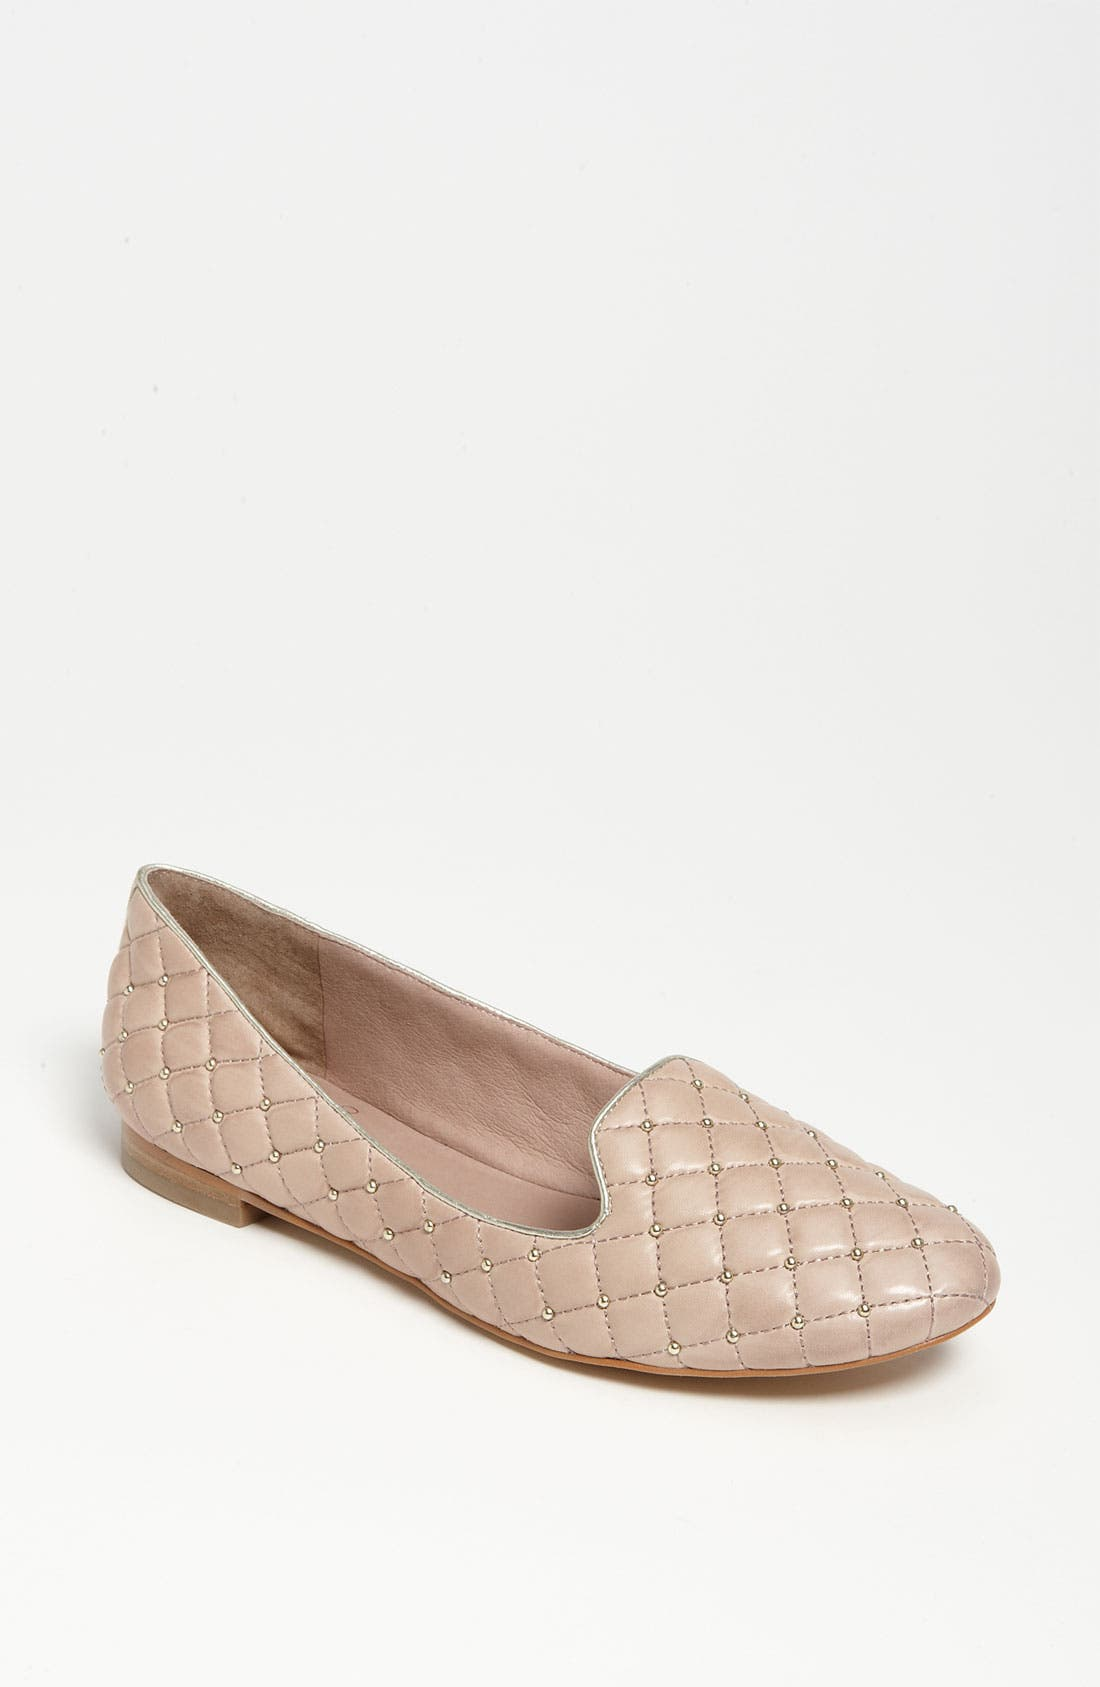 Alternate Image 1 Selected - Vince Camuto 'Lilliana 2' Flat